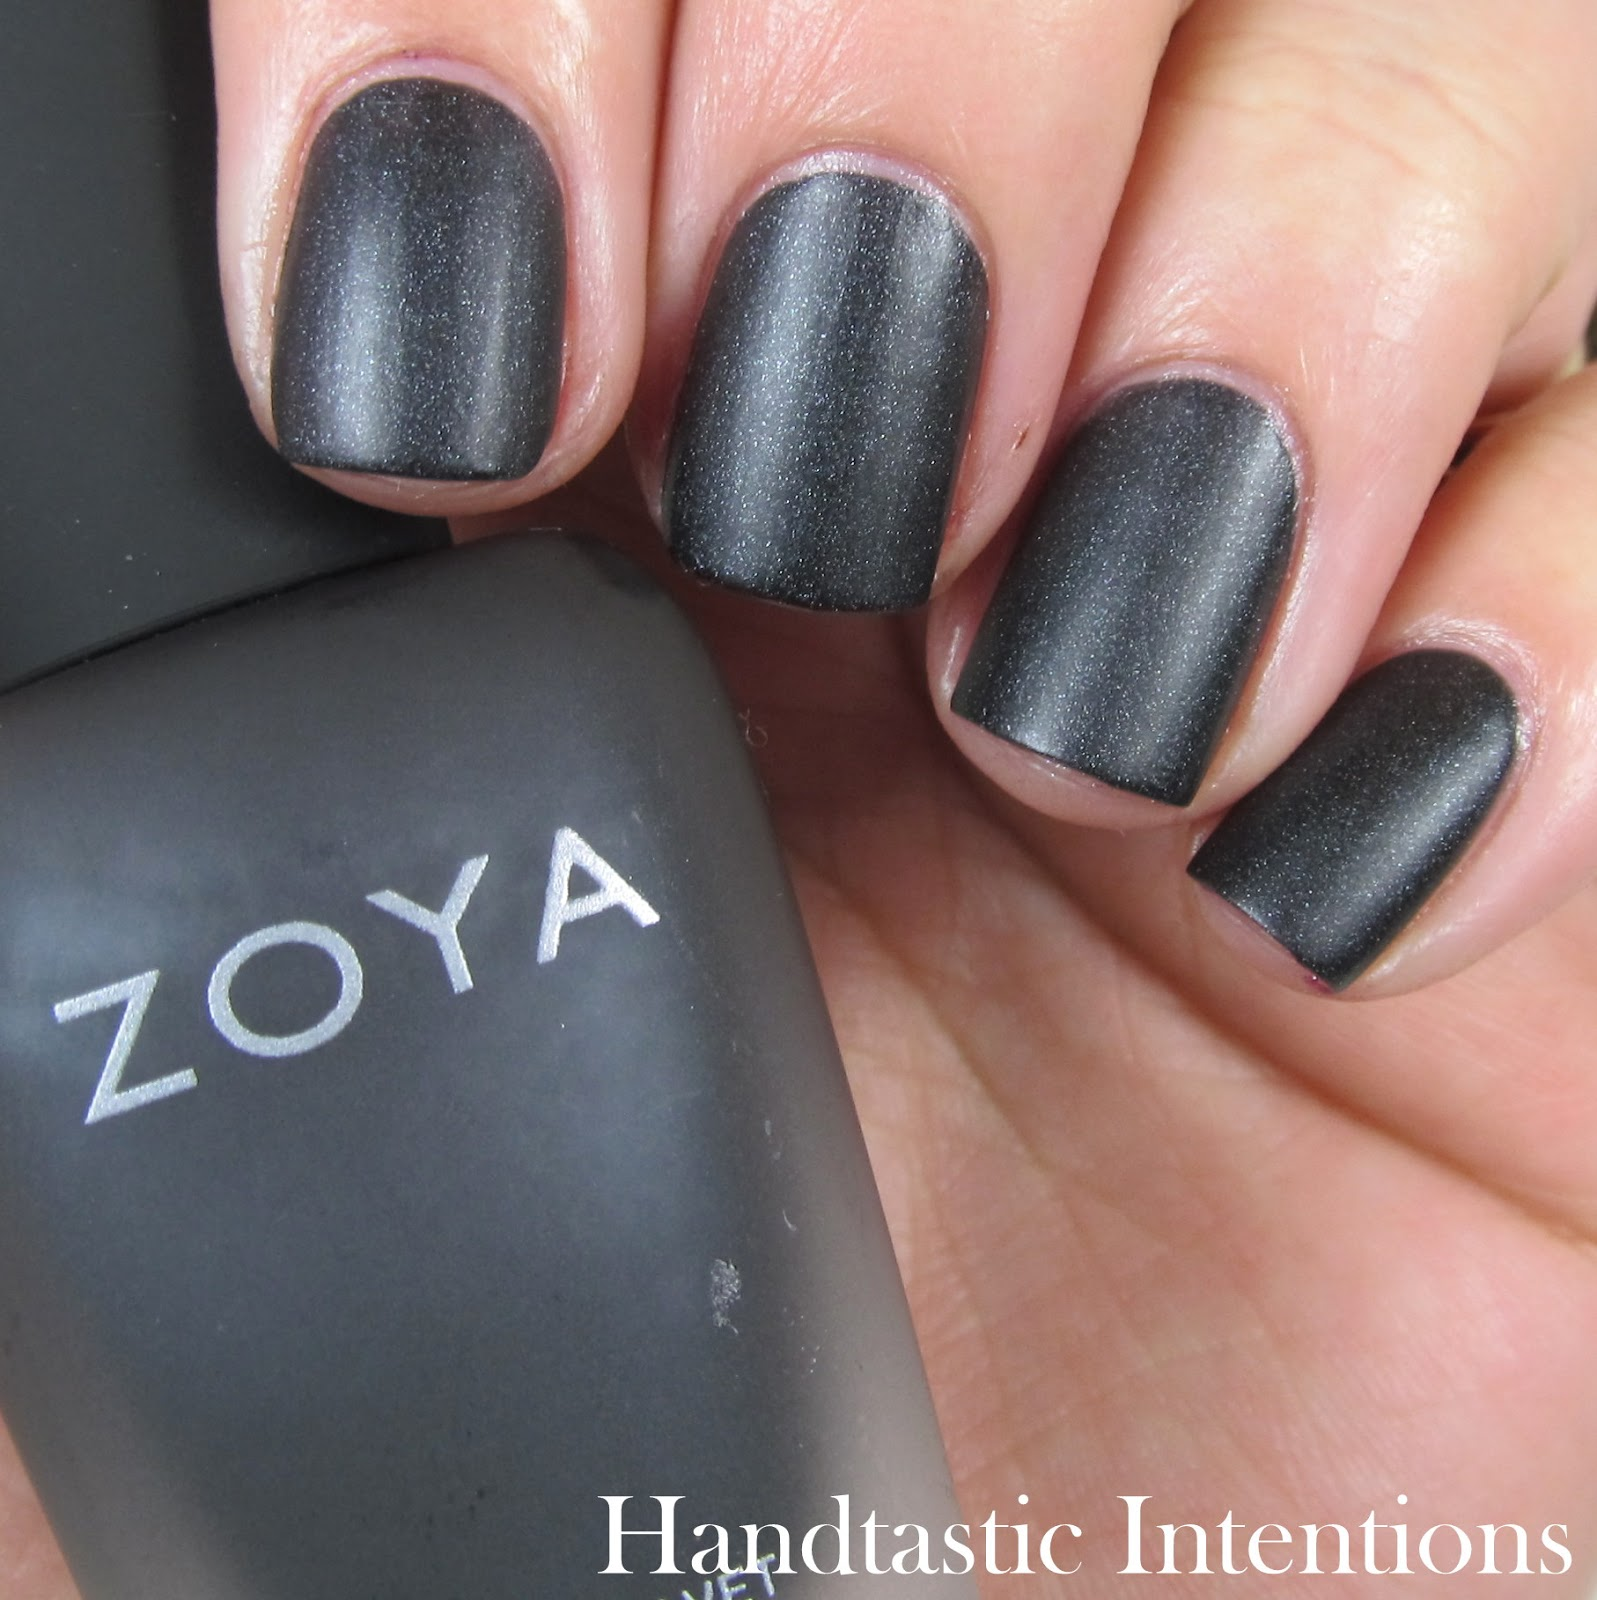 Zoya-Dovima-Swatches